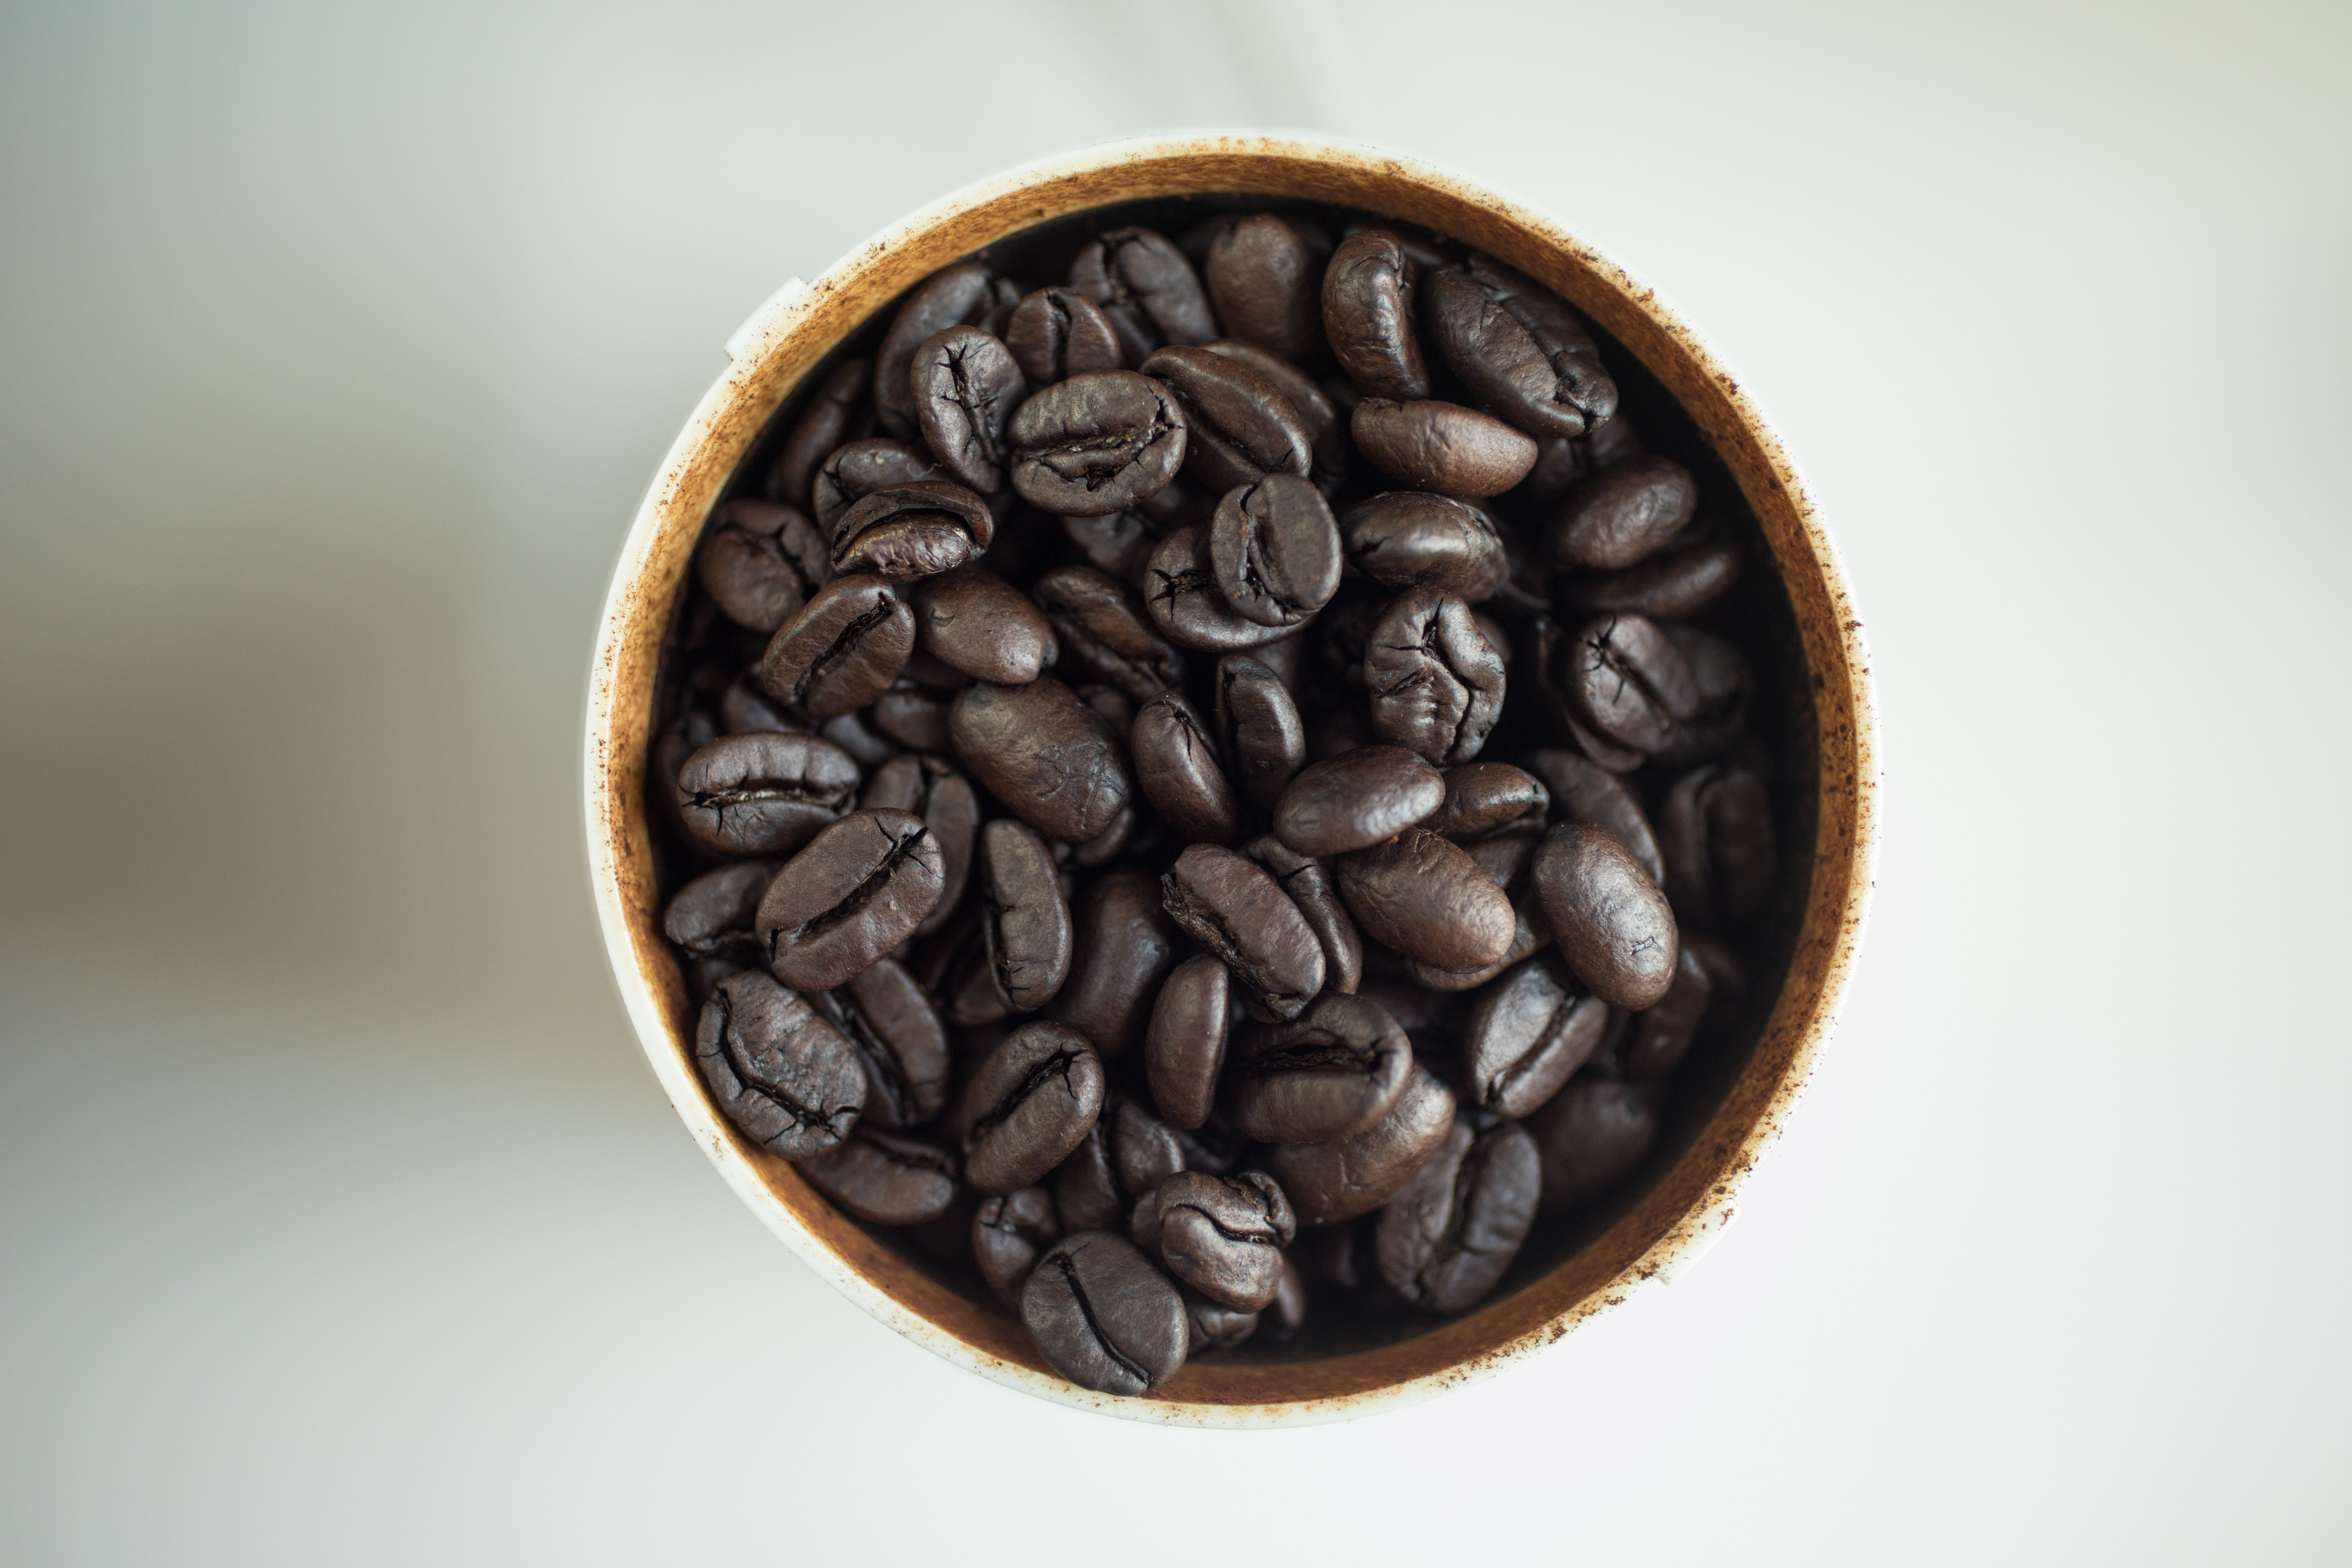 Coffee or cocoa What is better and what is healthier